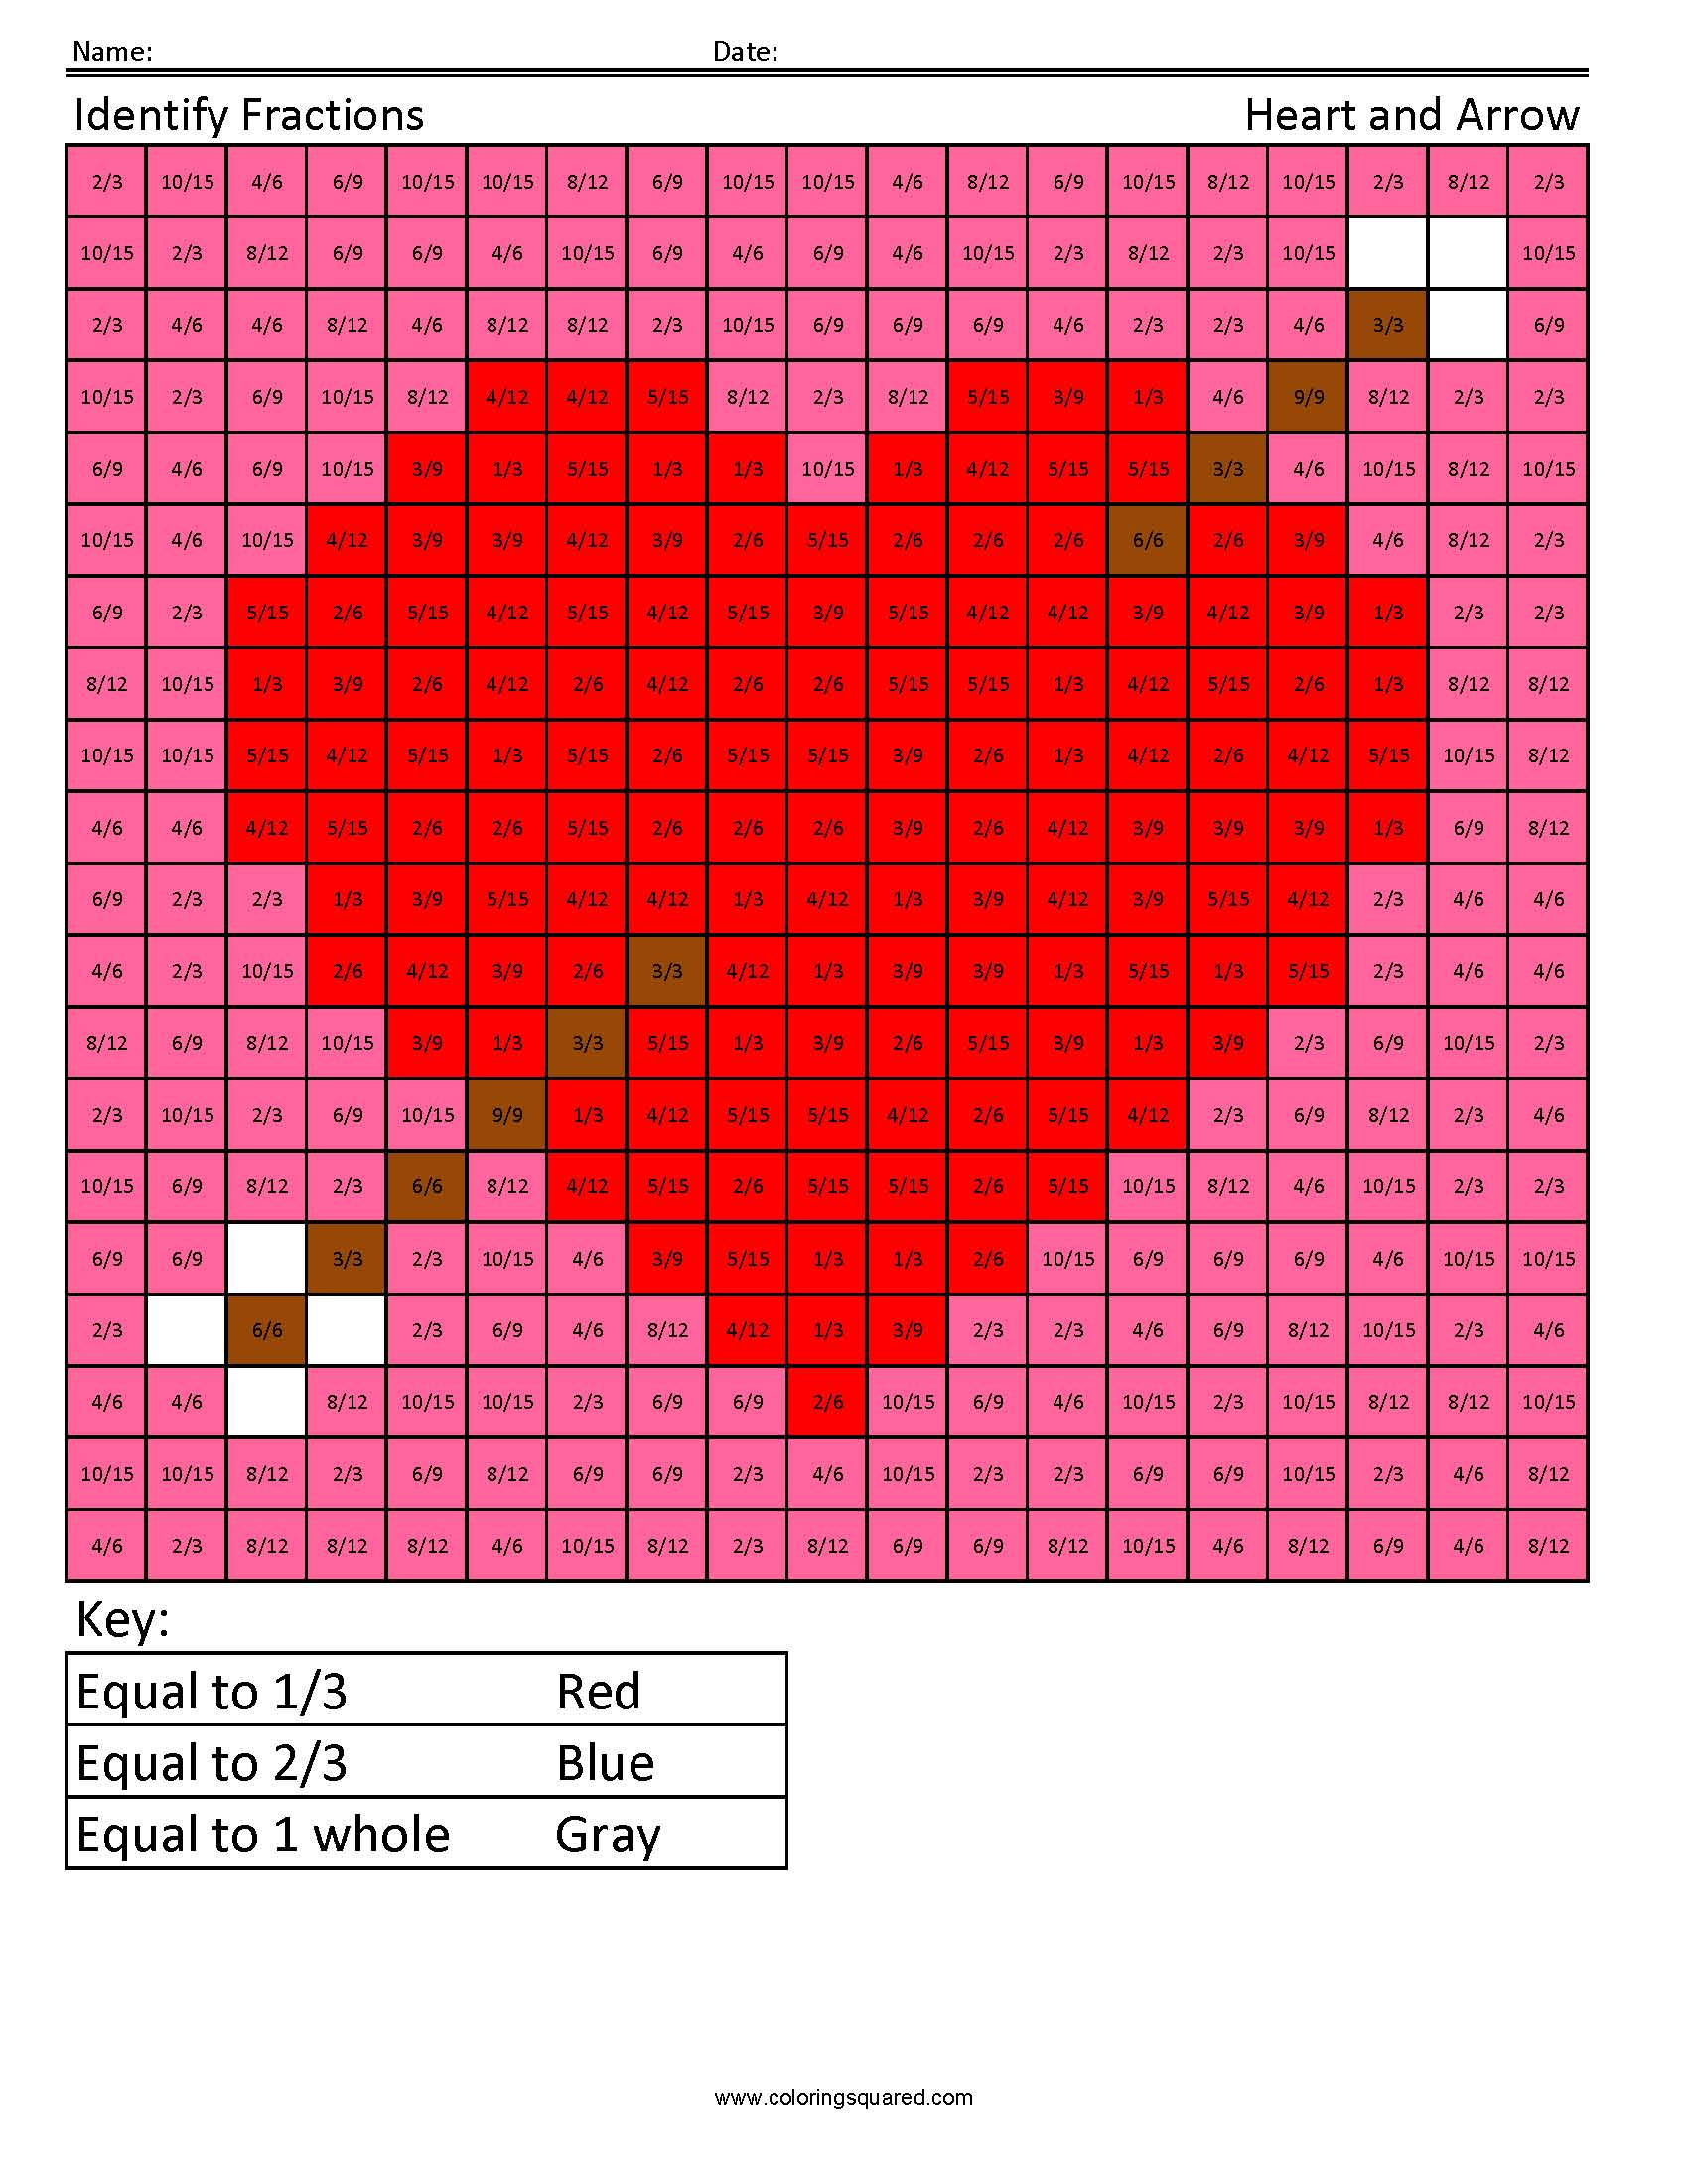 Identifying Fractions Heart